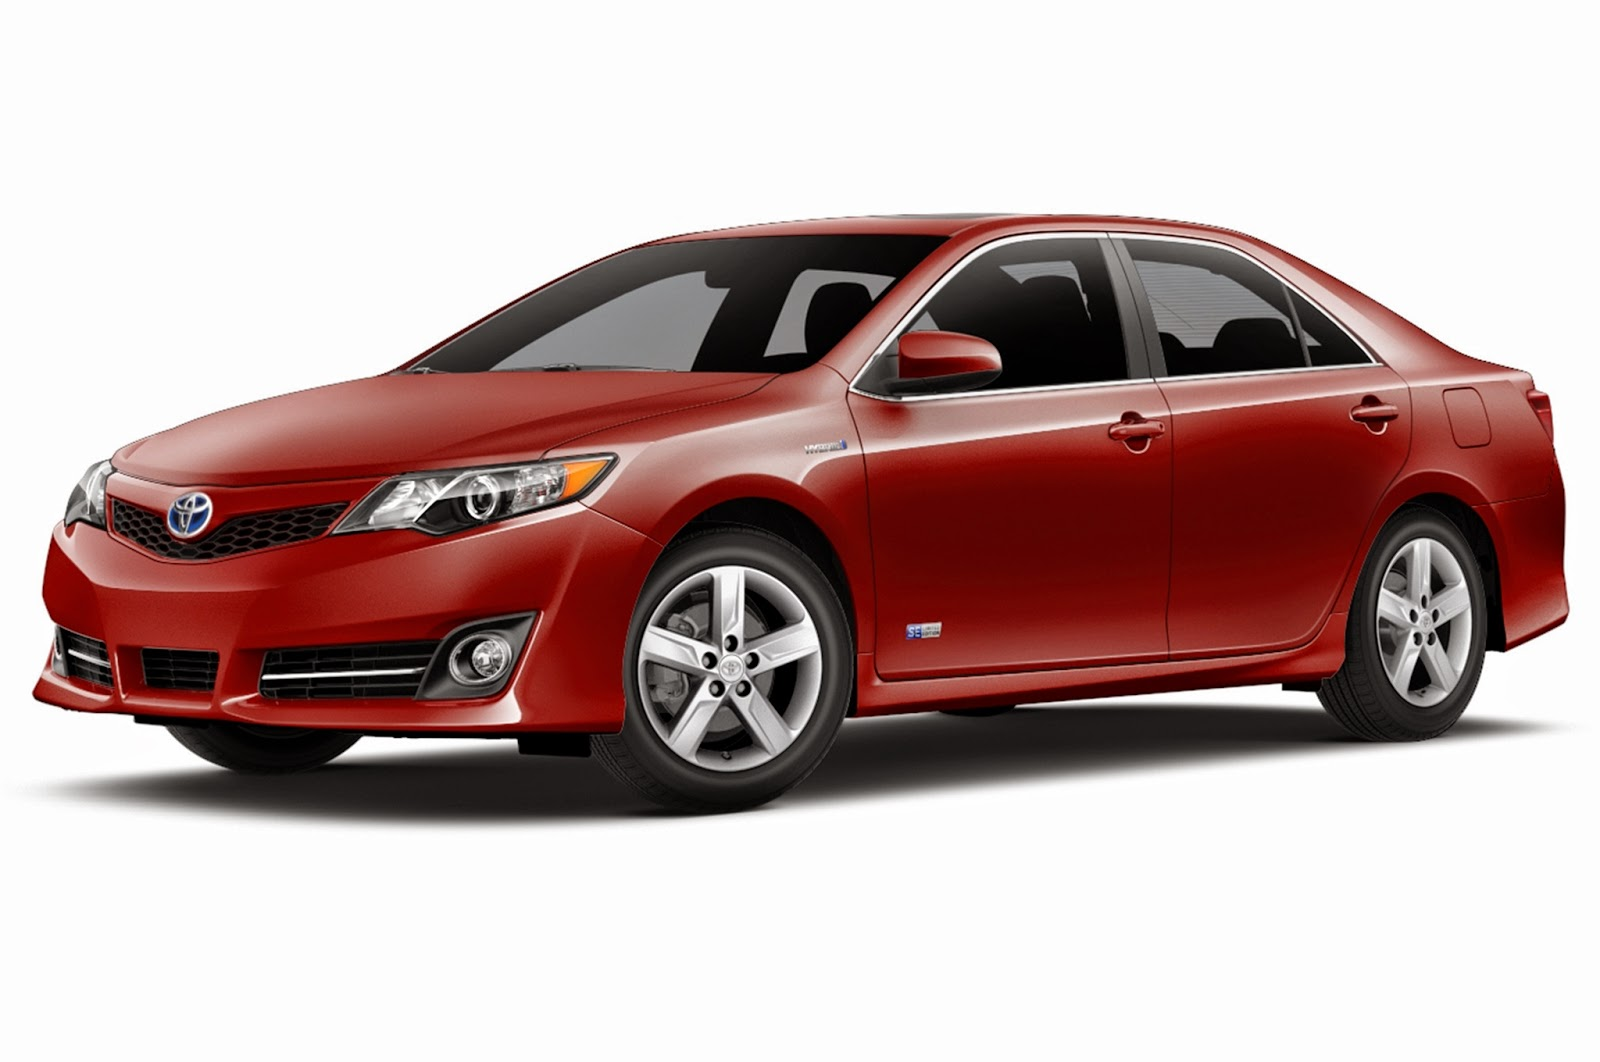 get info cars 2014 toyota camry owners manual pdf rh pa ica blogspot com 2015 toyota camry owners manual pdf 2015 toyota camry owners manual